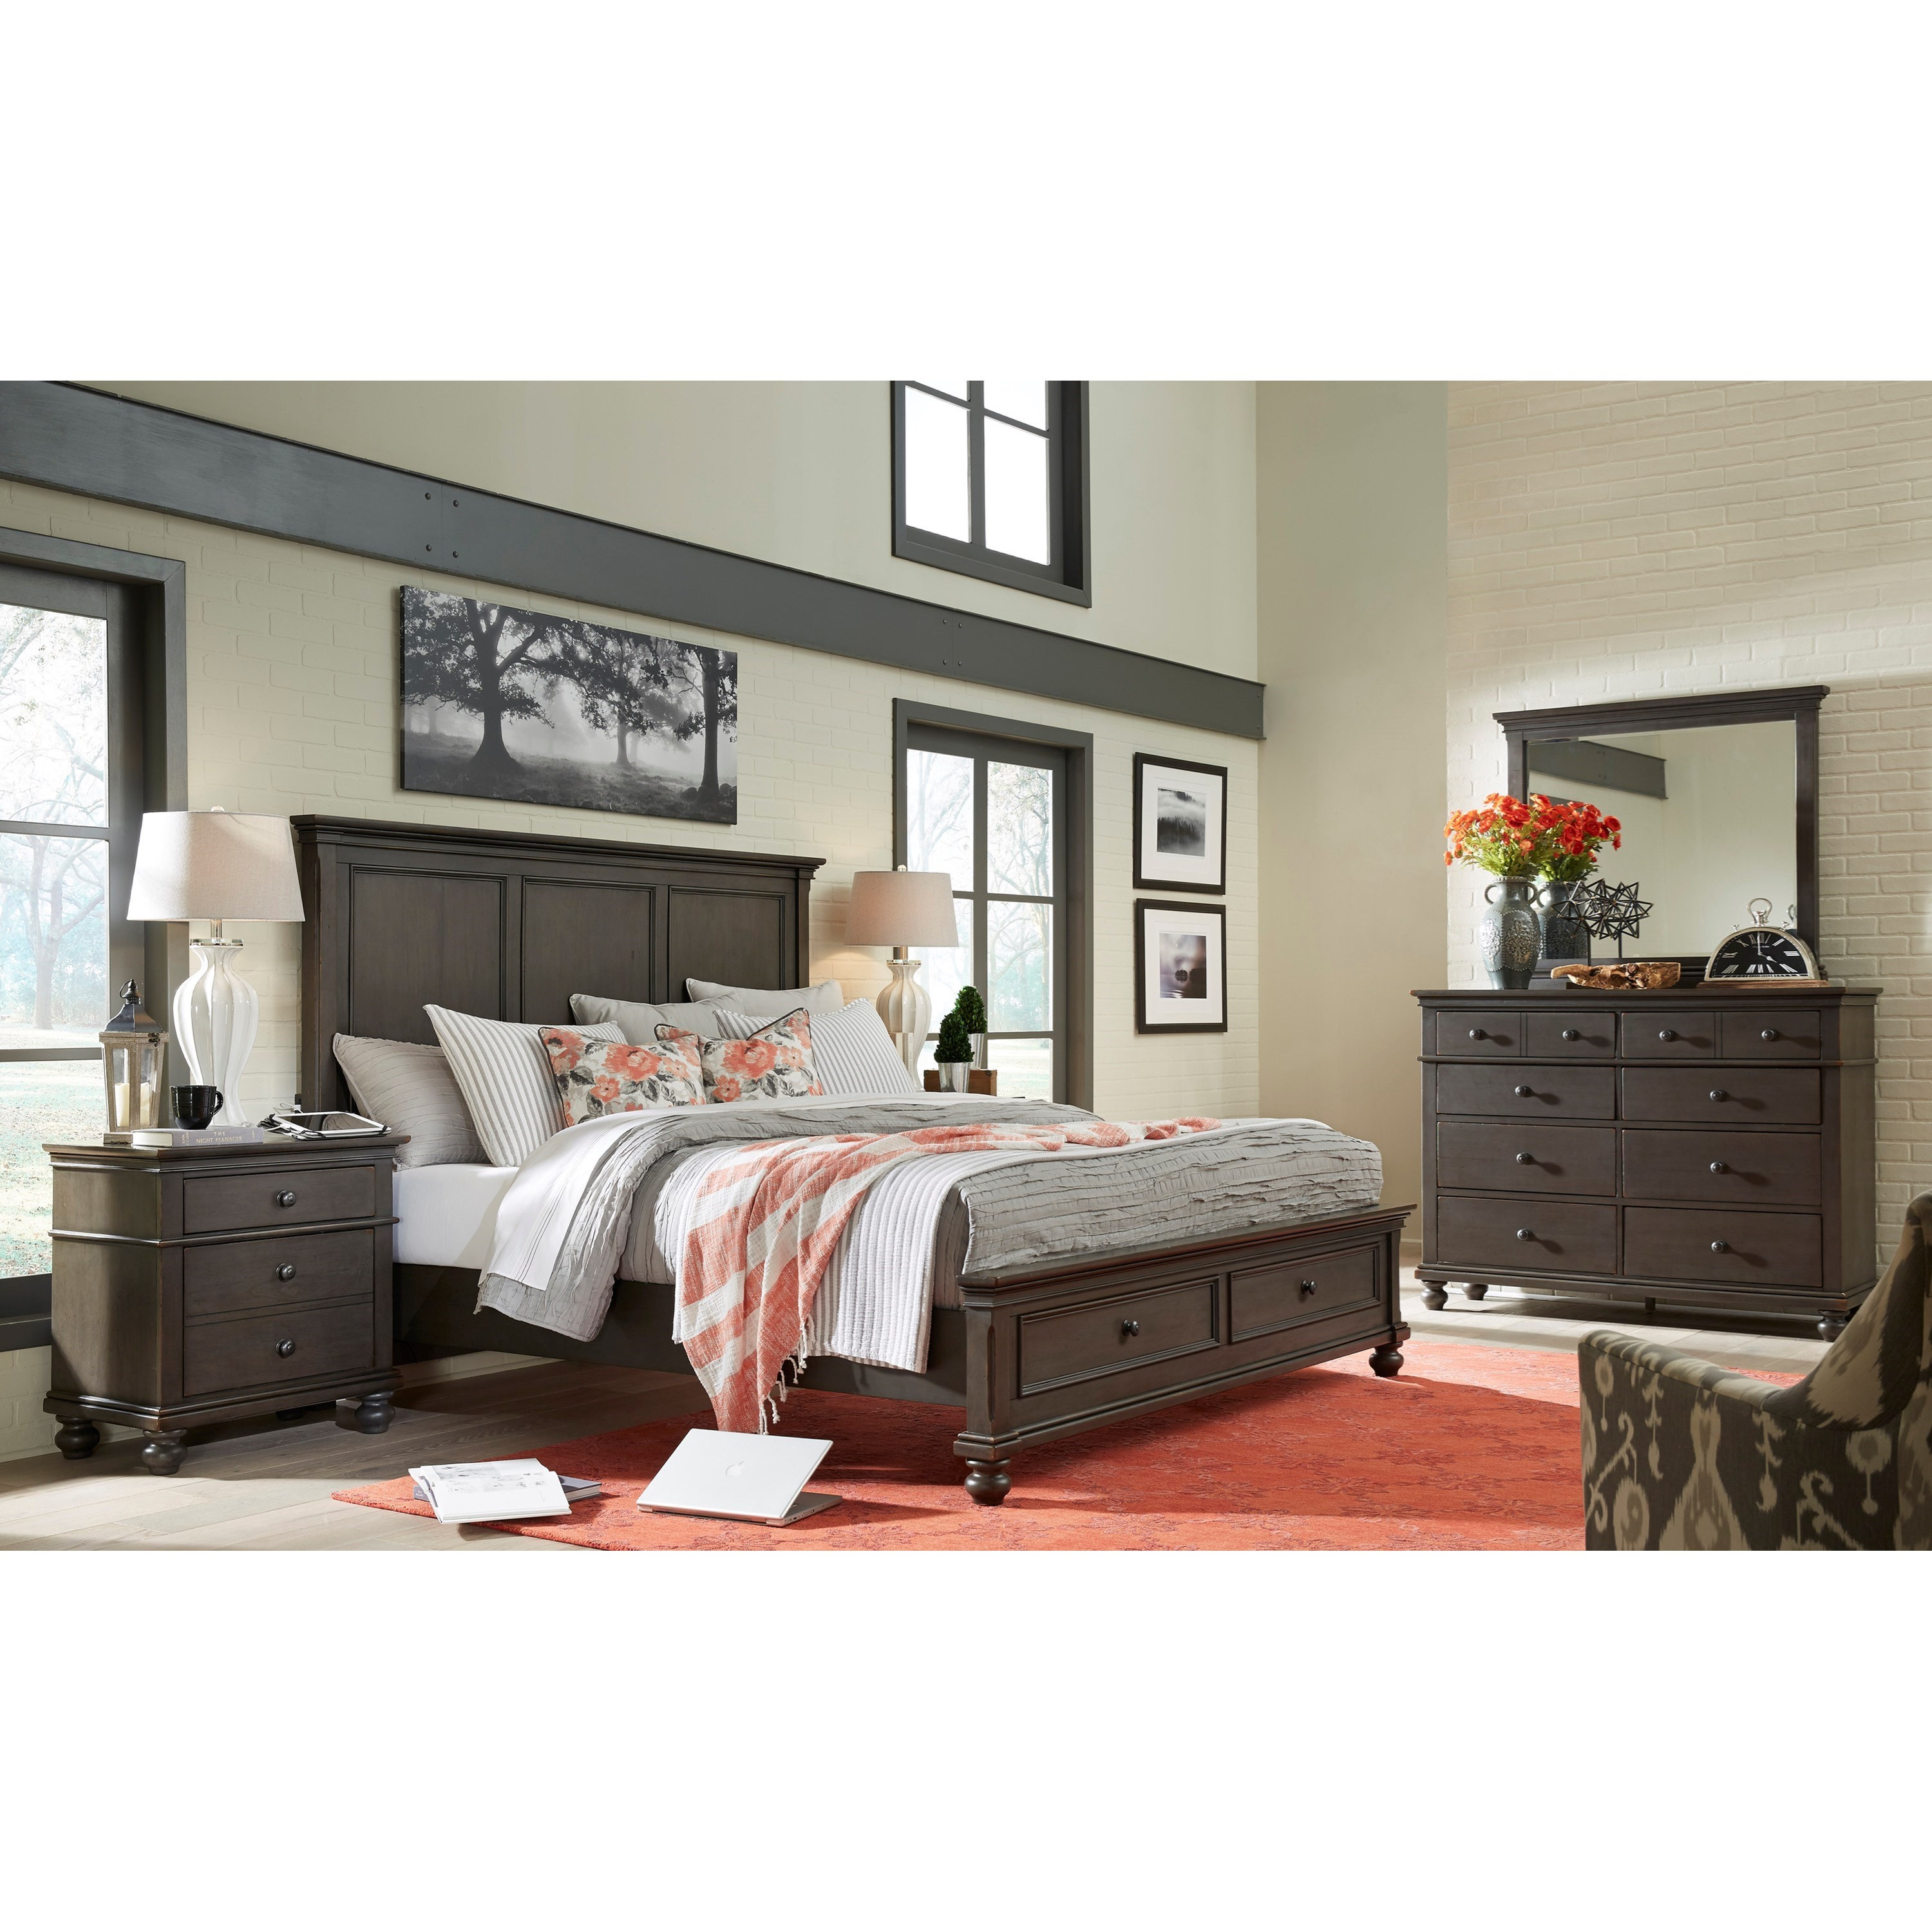 Aspenhome oxford queen bedroom group belfort furniture for Bedroom furniture groups